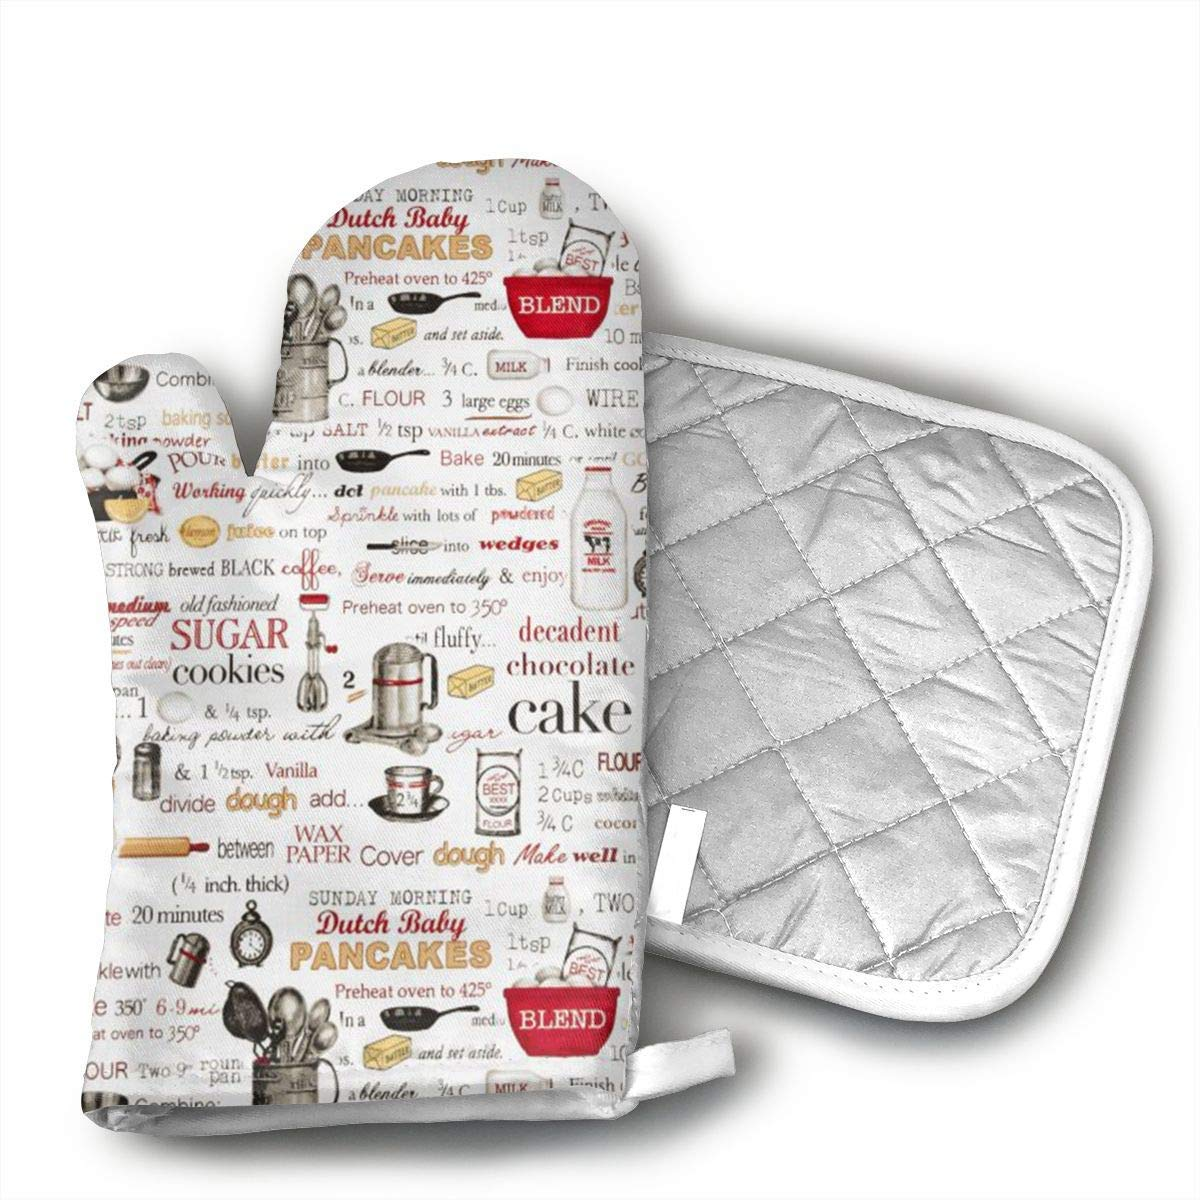 NoveltyGloves The Cook Recipes Oven Mitts for Kitchen Heat Resistant Oven Gloves for BBQ Cooking Baking Grilling